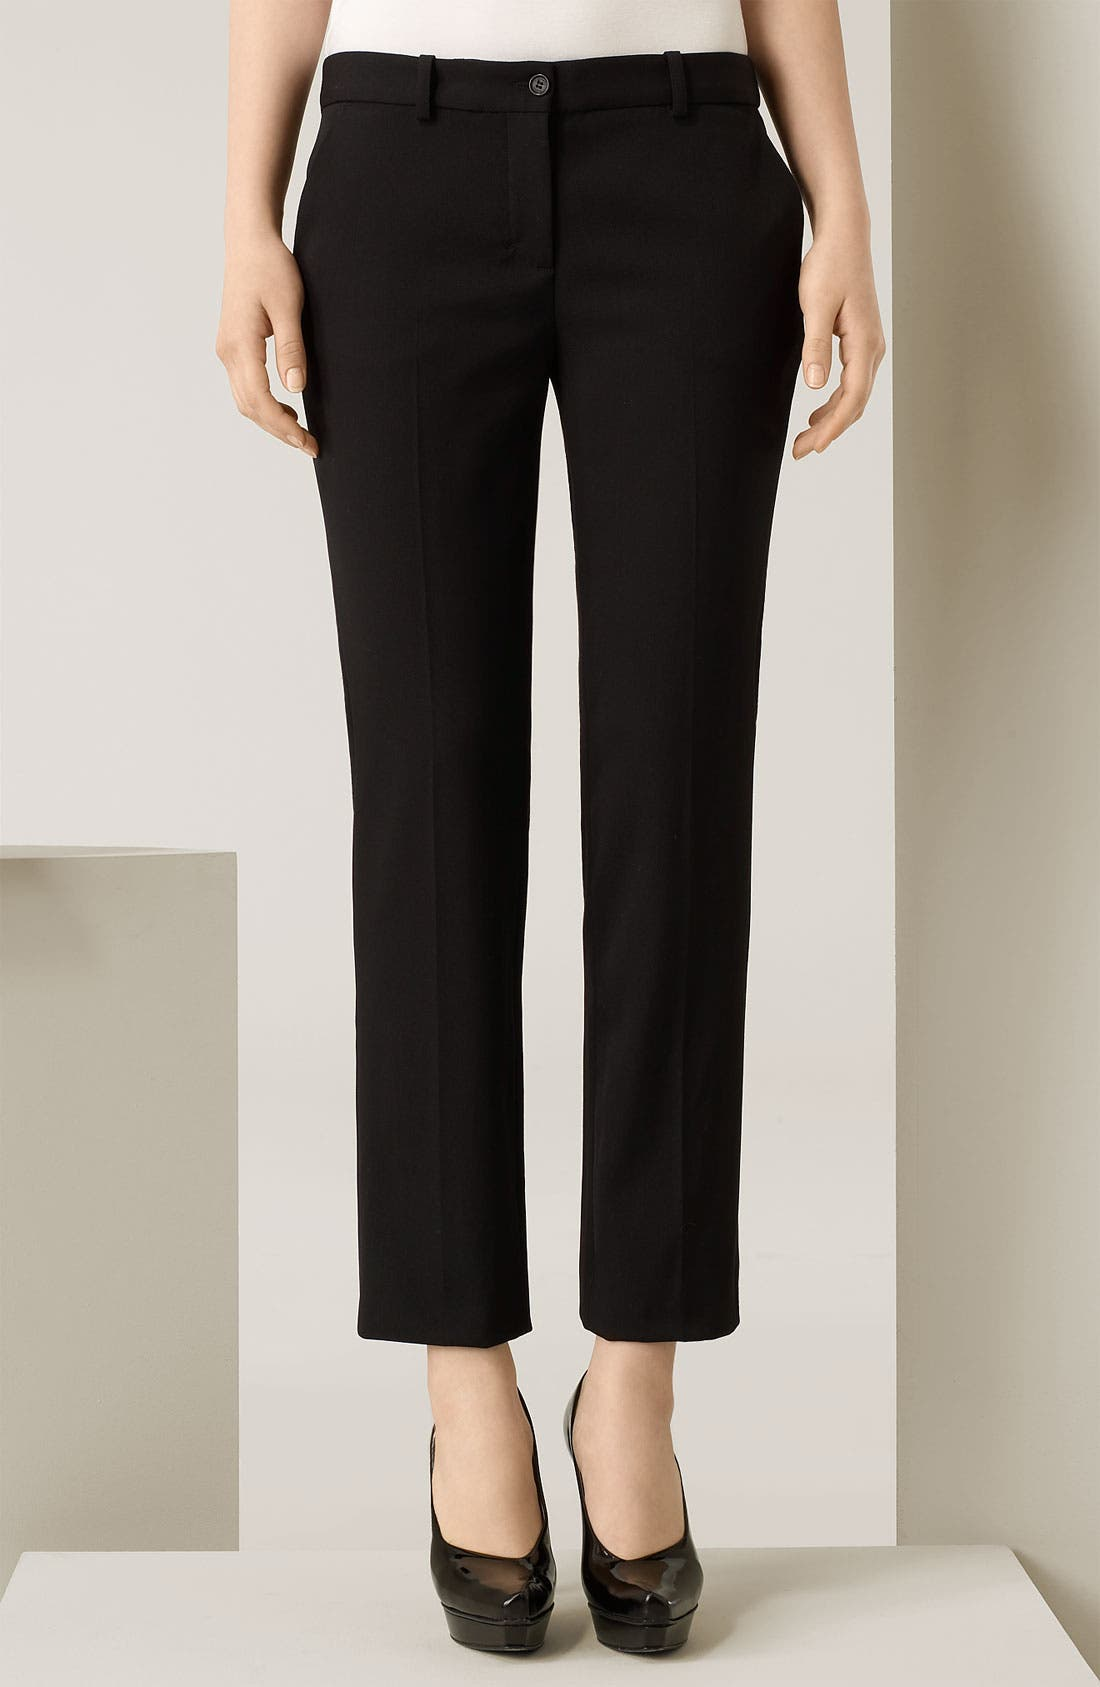 Alternate Image 1 Selected - Michael Kors Cotton Broadcloth Capri Pants